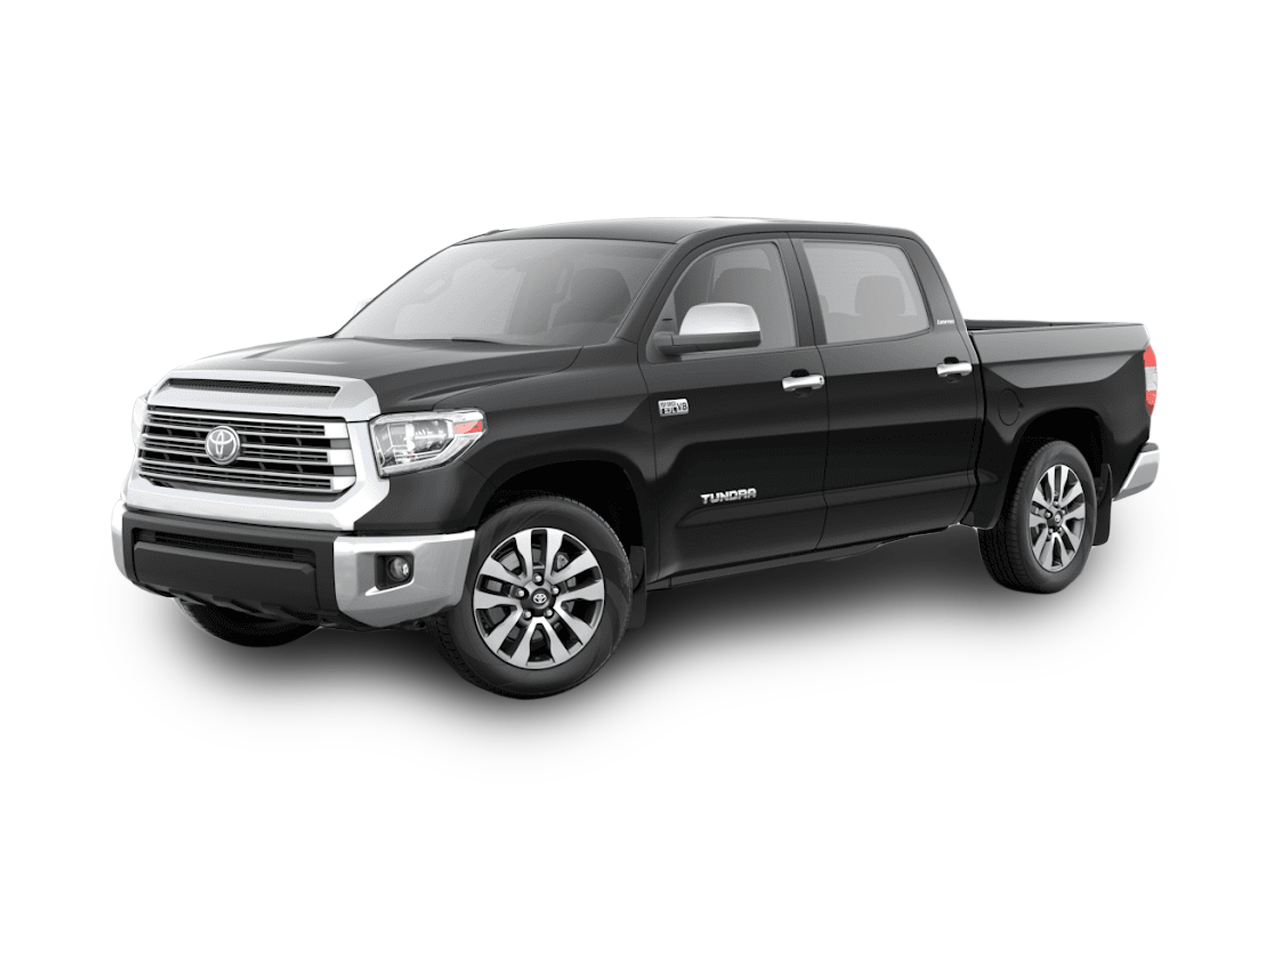 90 The 2019 Toyota Tundra Truck Configurations